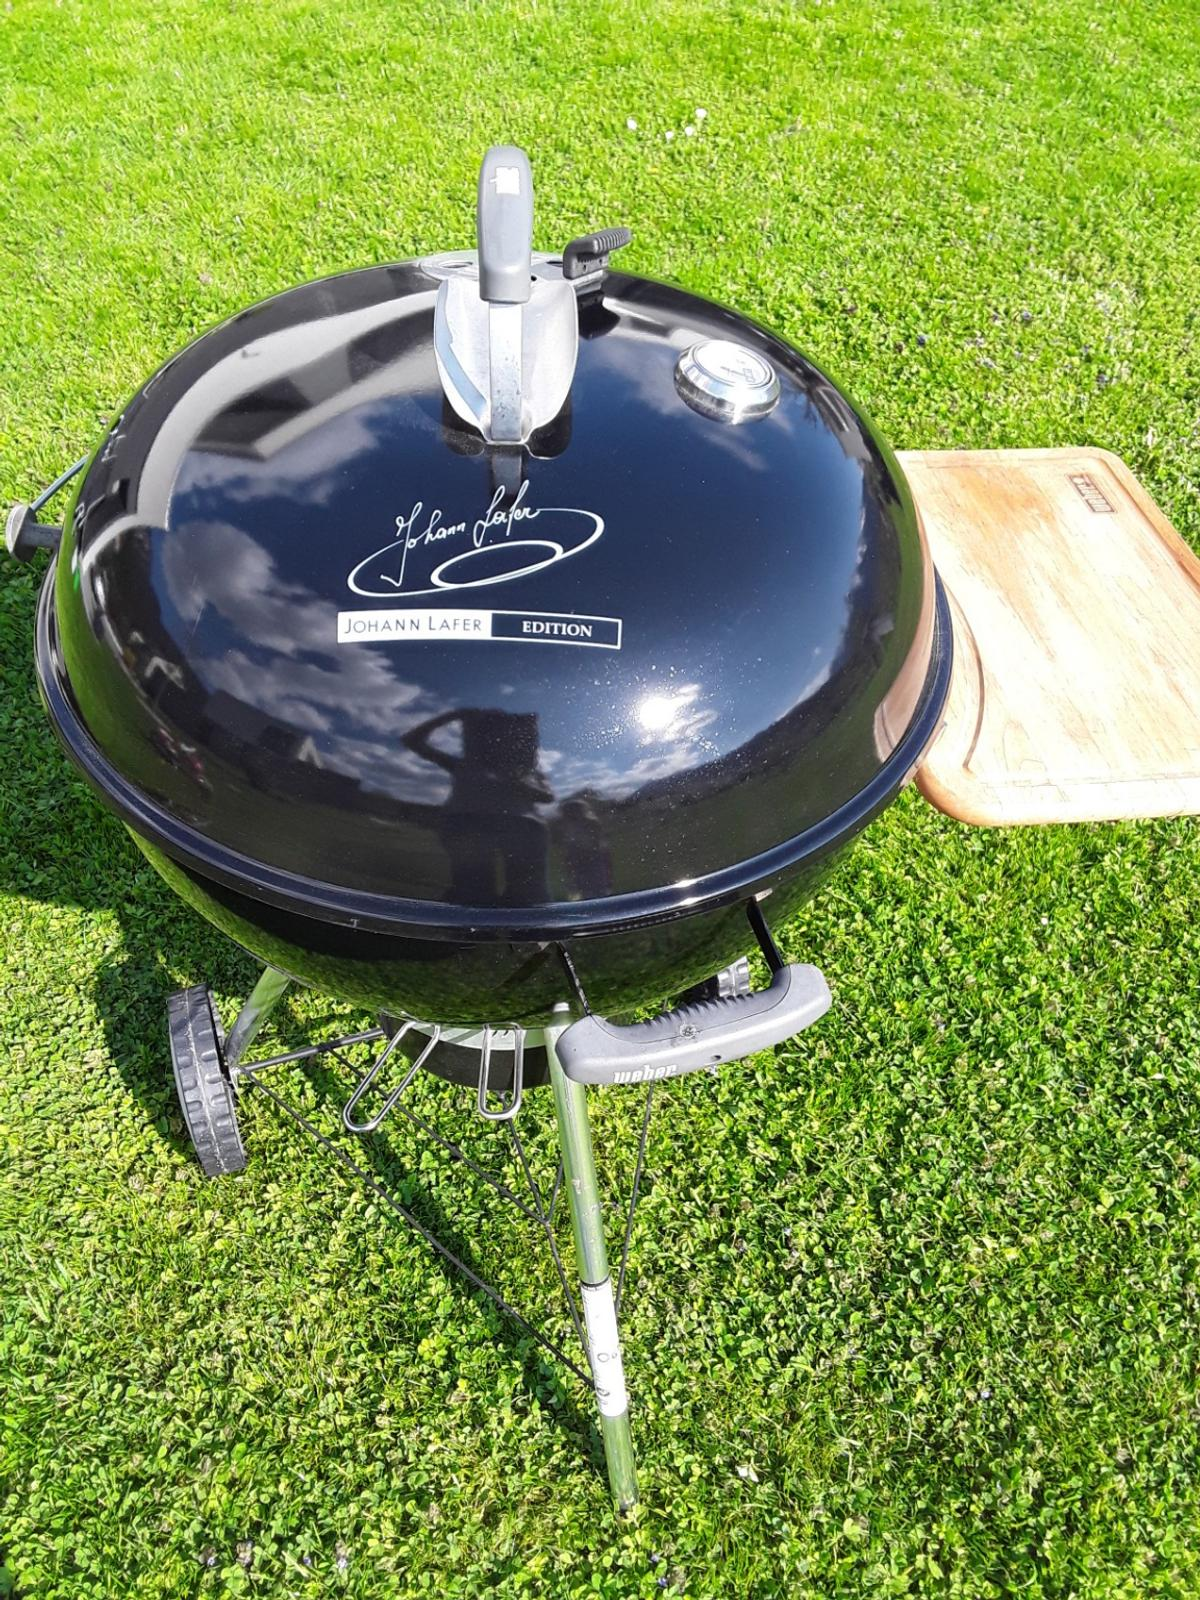 Lafer Grill